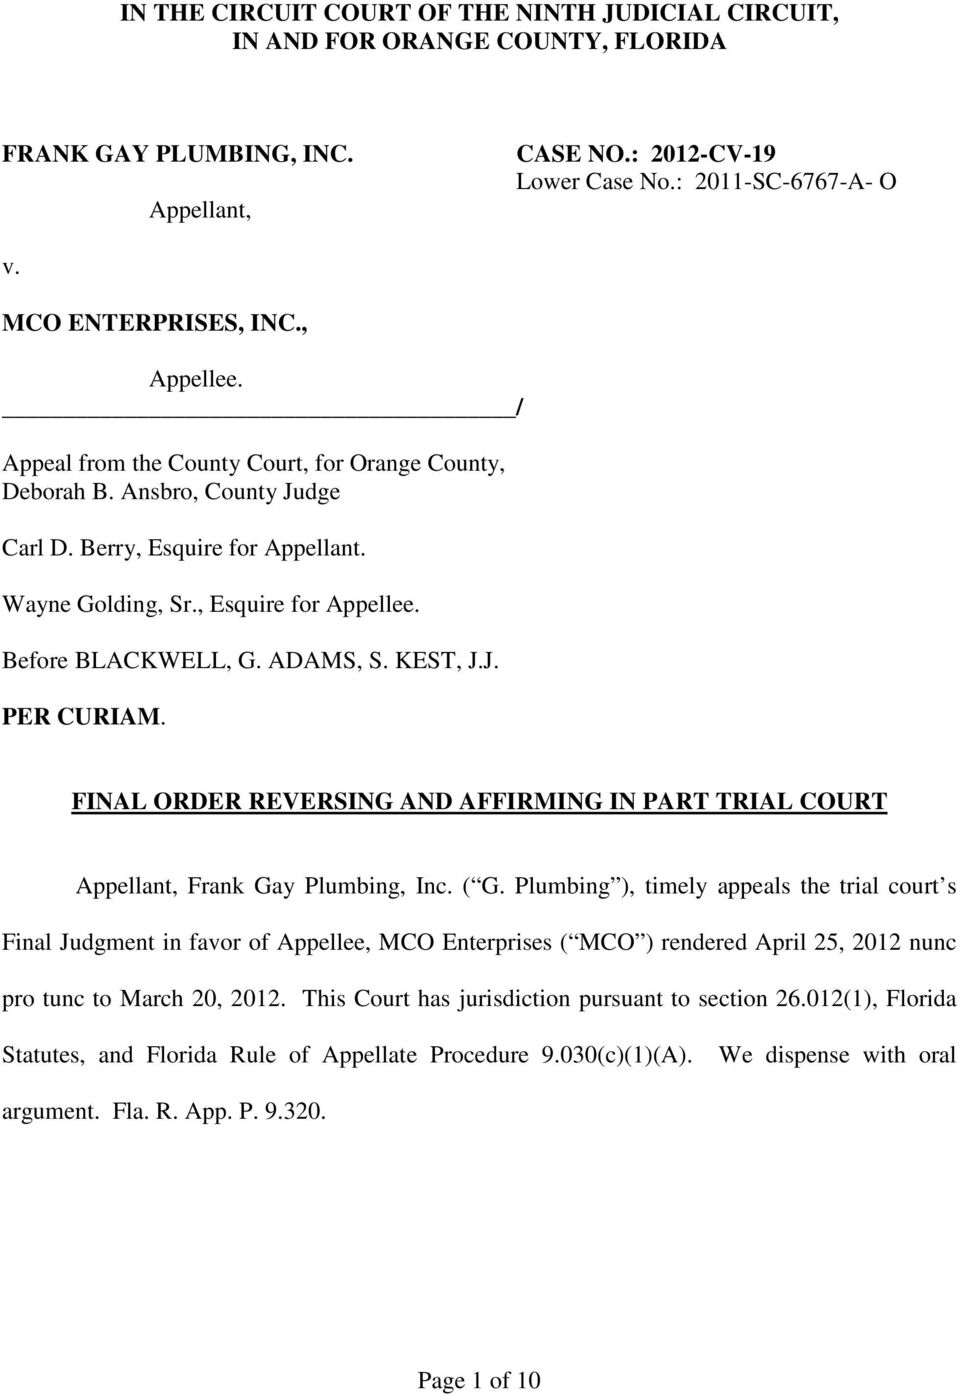 Before BLACKWELL, G. ADAMS, S. KEST, J.J. PER CURIAM. FINAL ORDER REVERSING AND AFFIRMING IN PART TRIAL COURT Appellant, Frank Gay Plumbing, Inc. ( G.